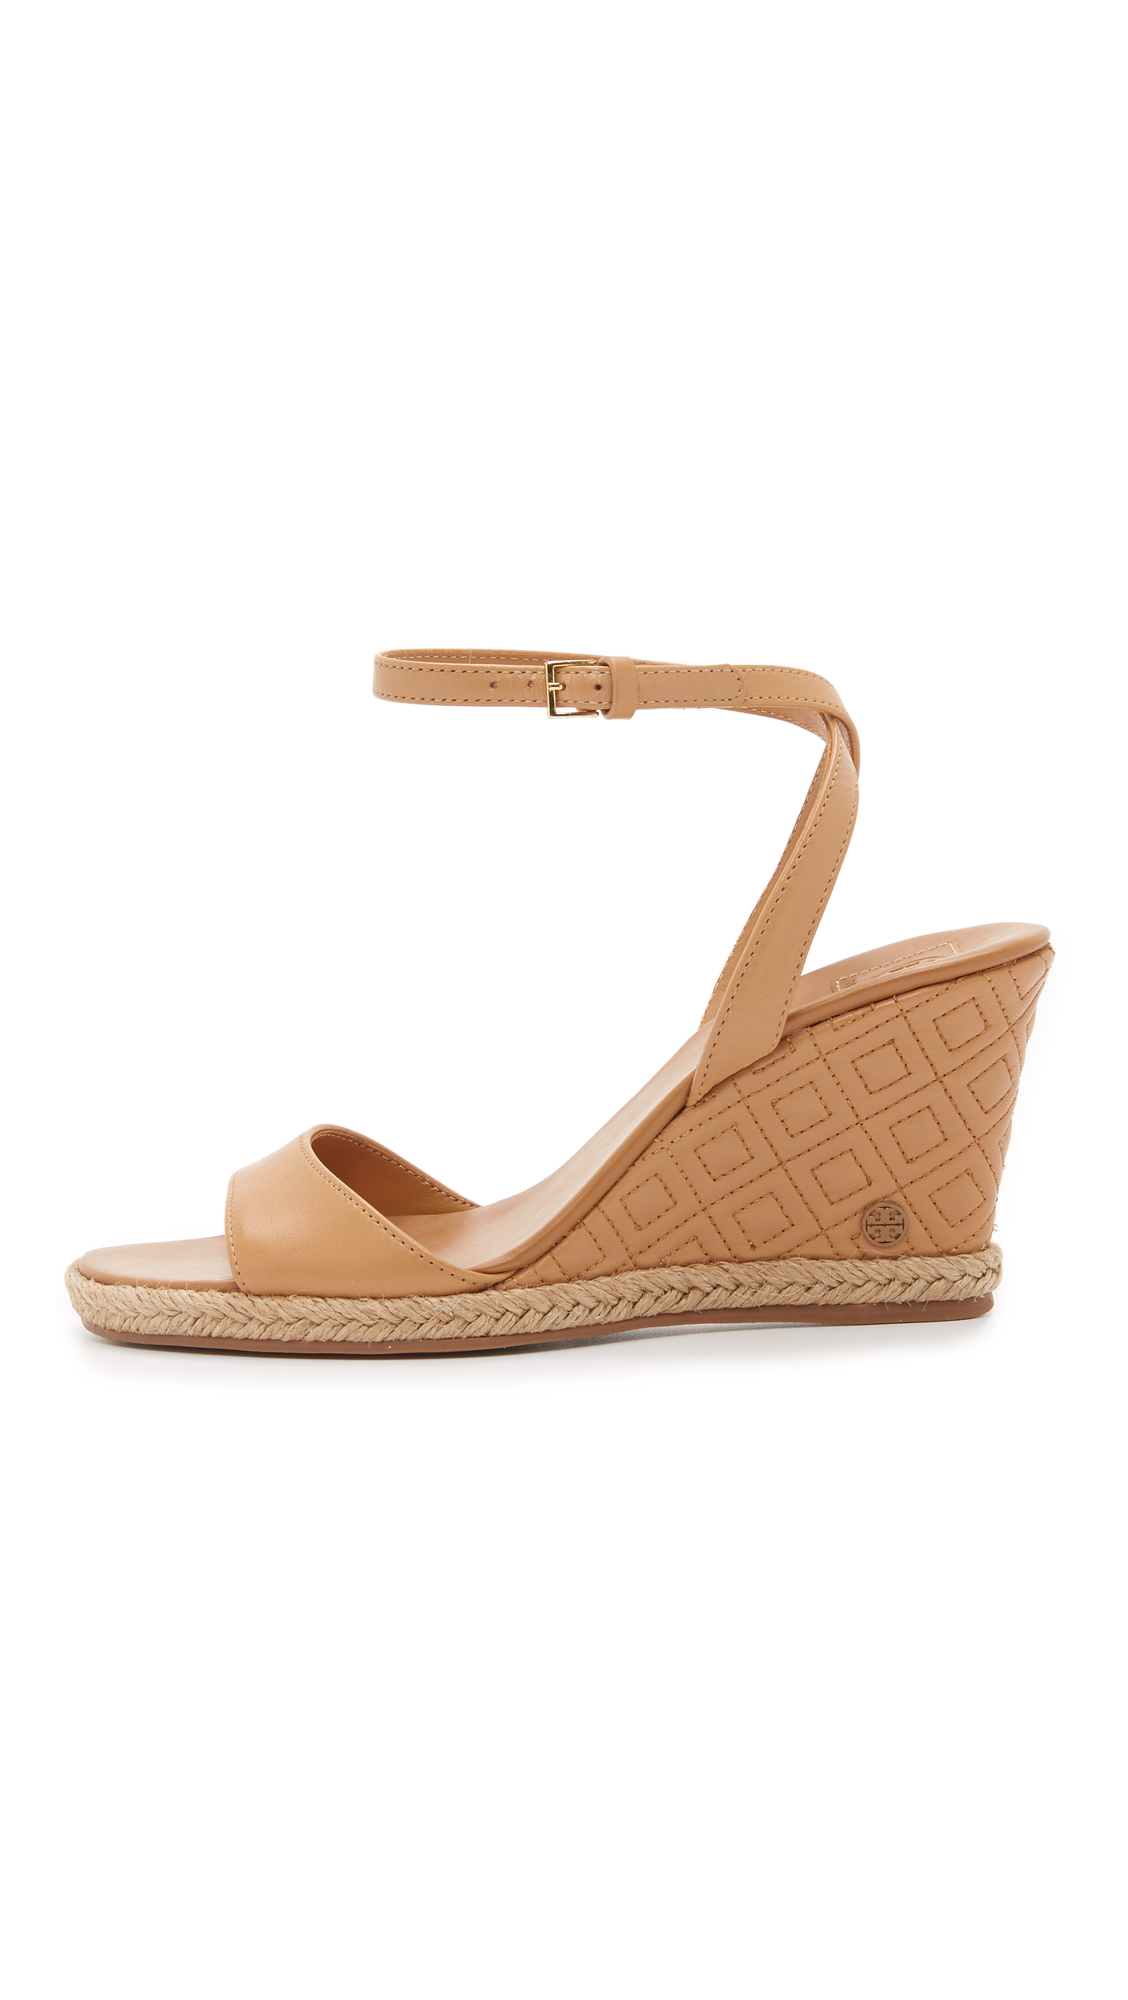 d76957106 Lyst - Tory Burch Marion Quilted Wedge Sandals in Natural